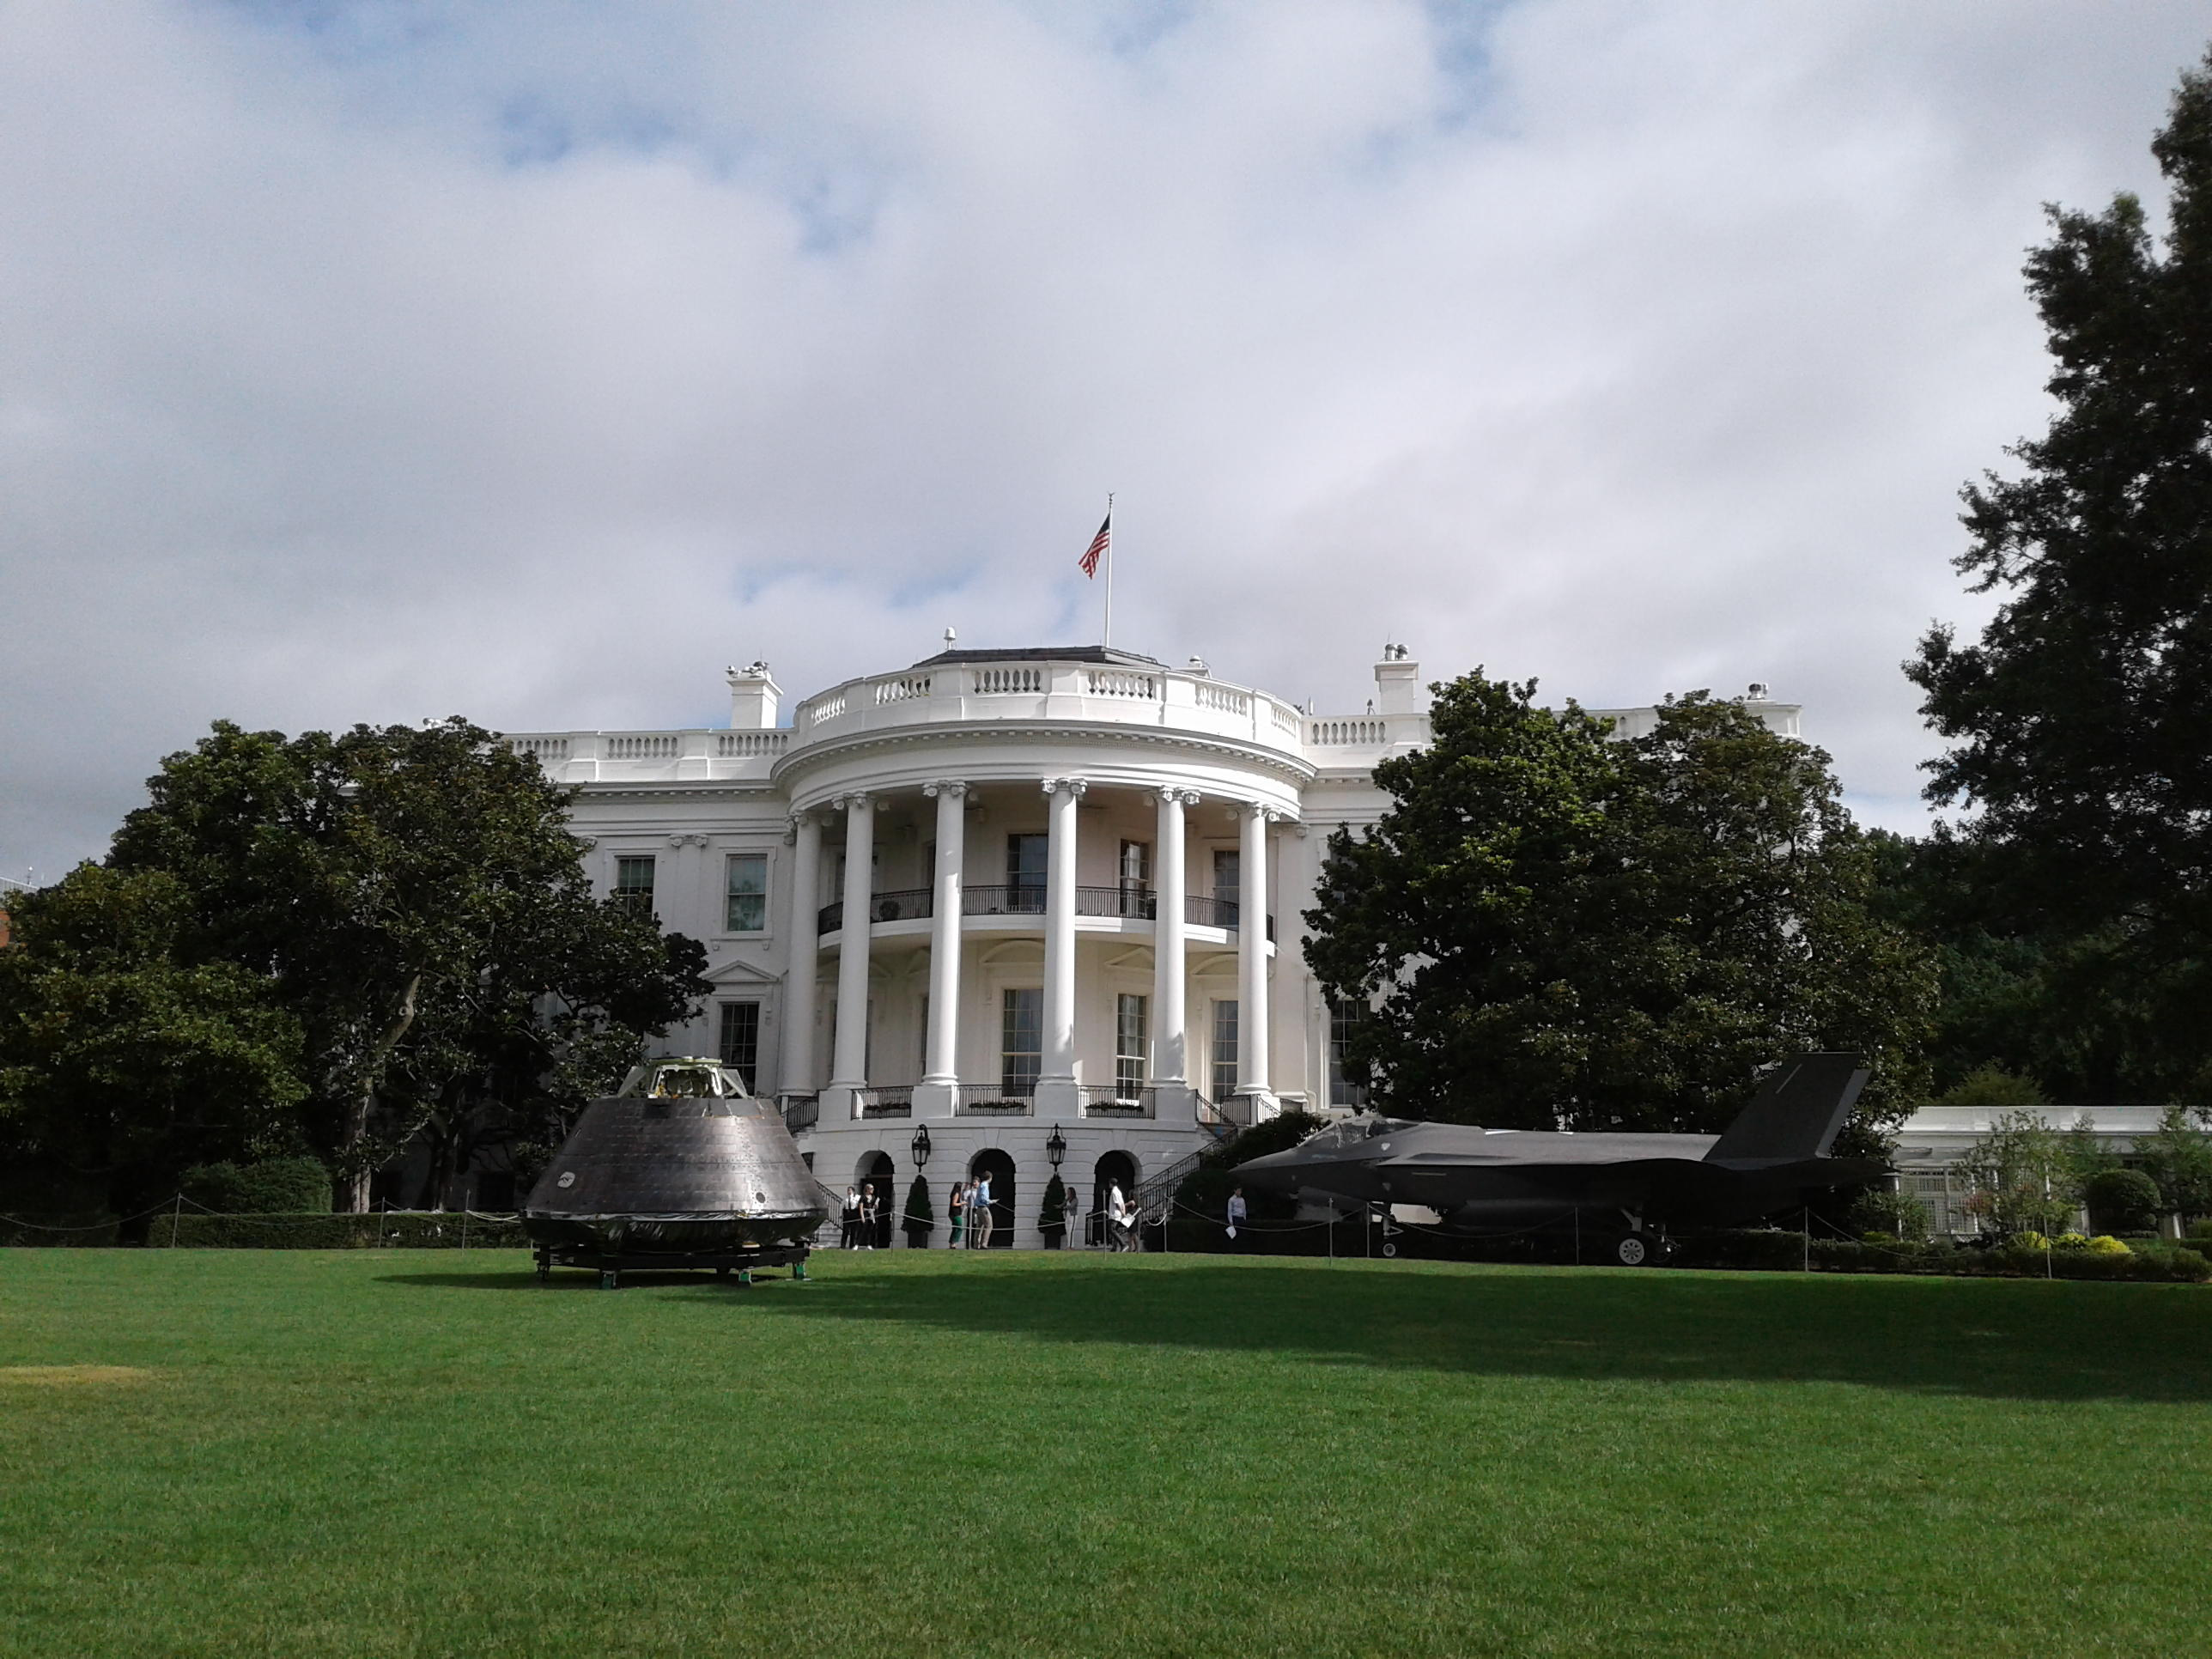 ARI Logistics Delivers to the White House Lawn